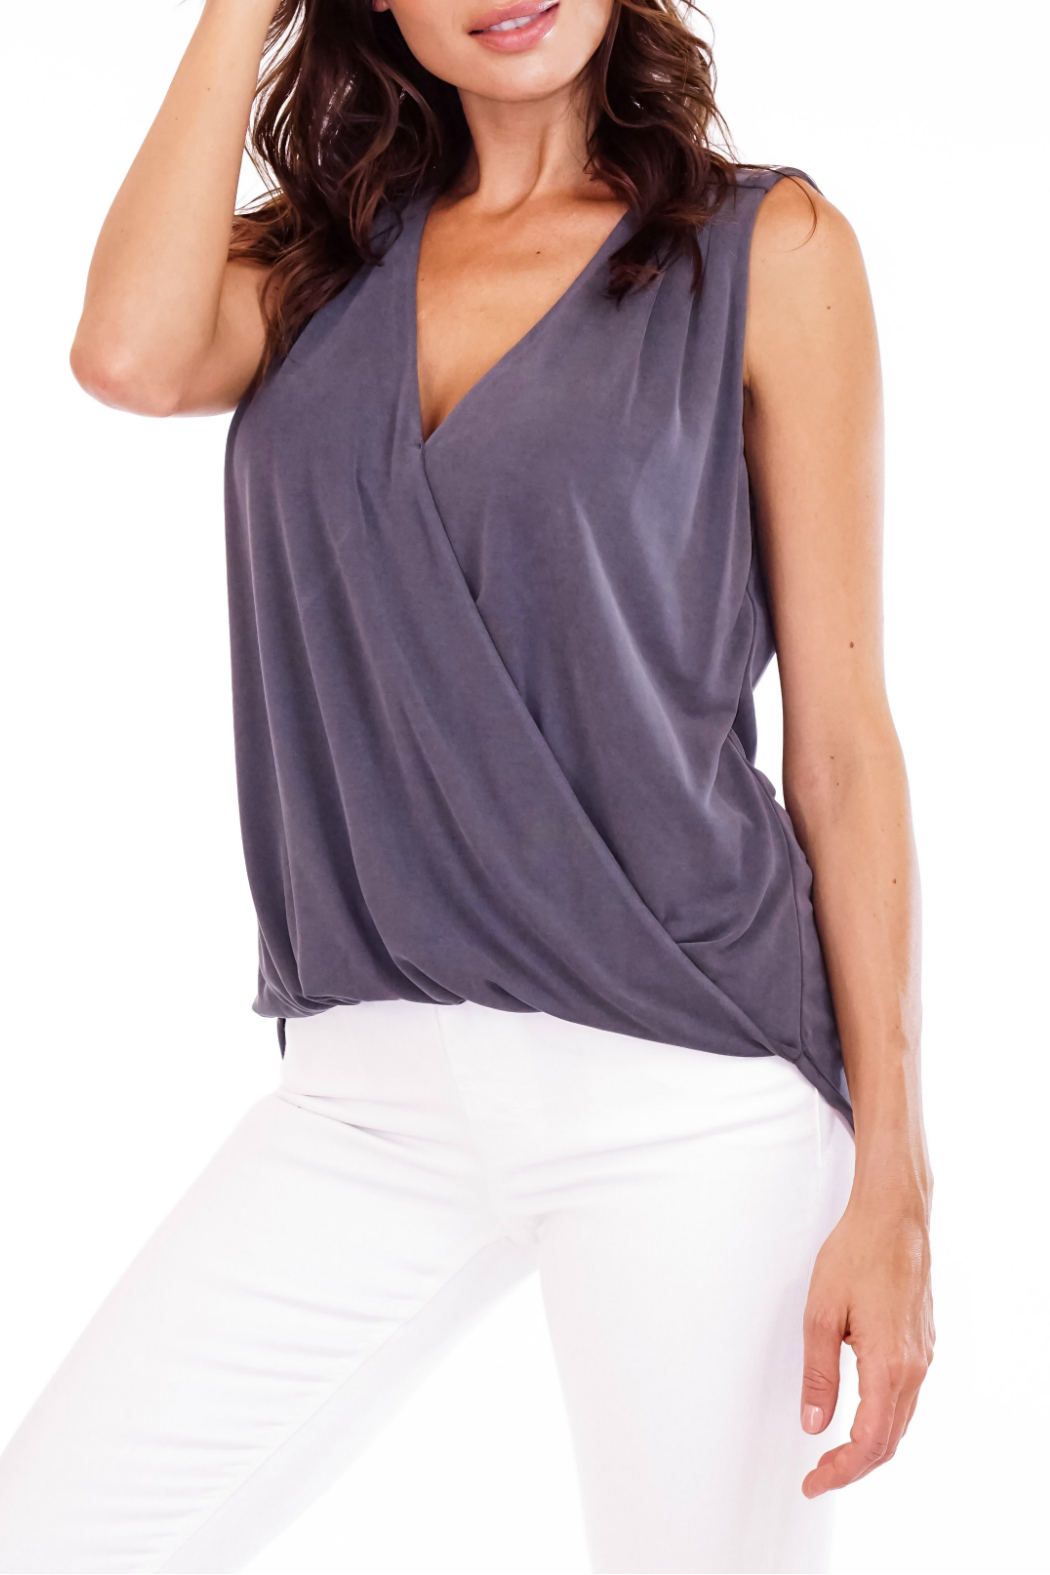 Veronica M Cupro Sleeveless Surplice Top - Front Cropped Image